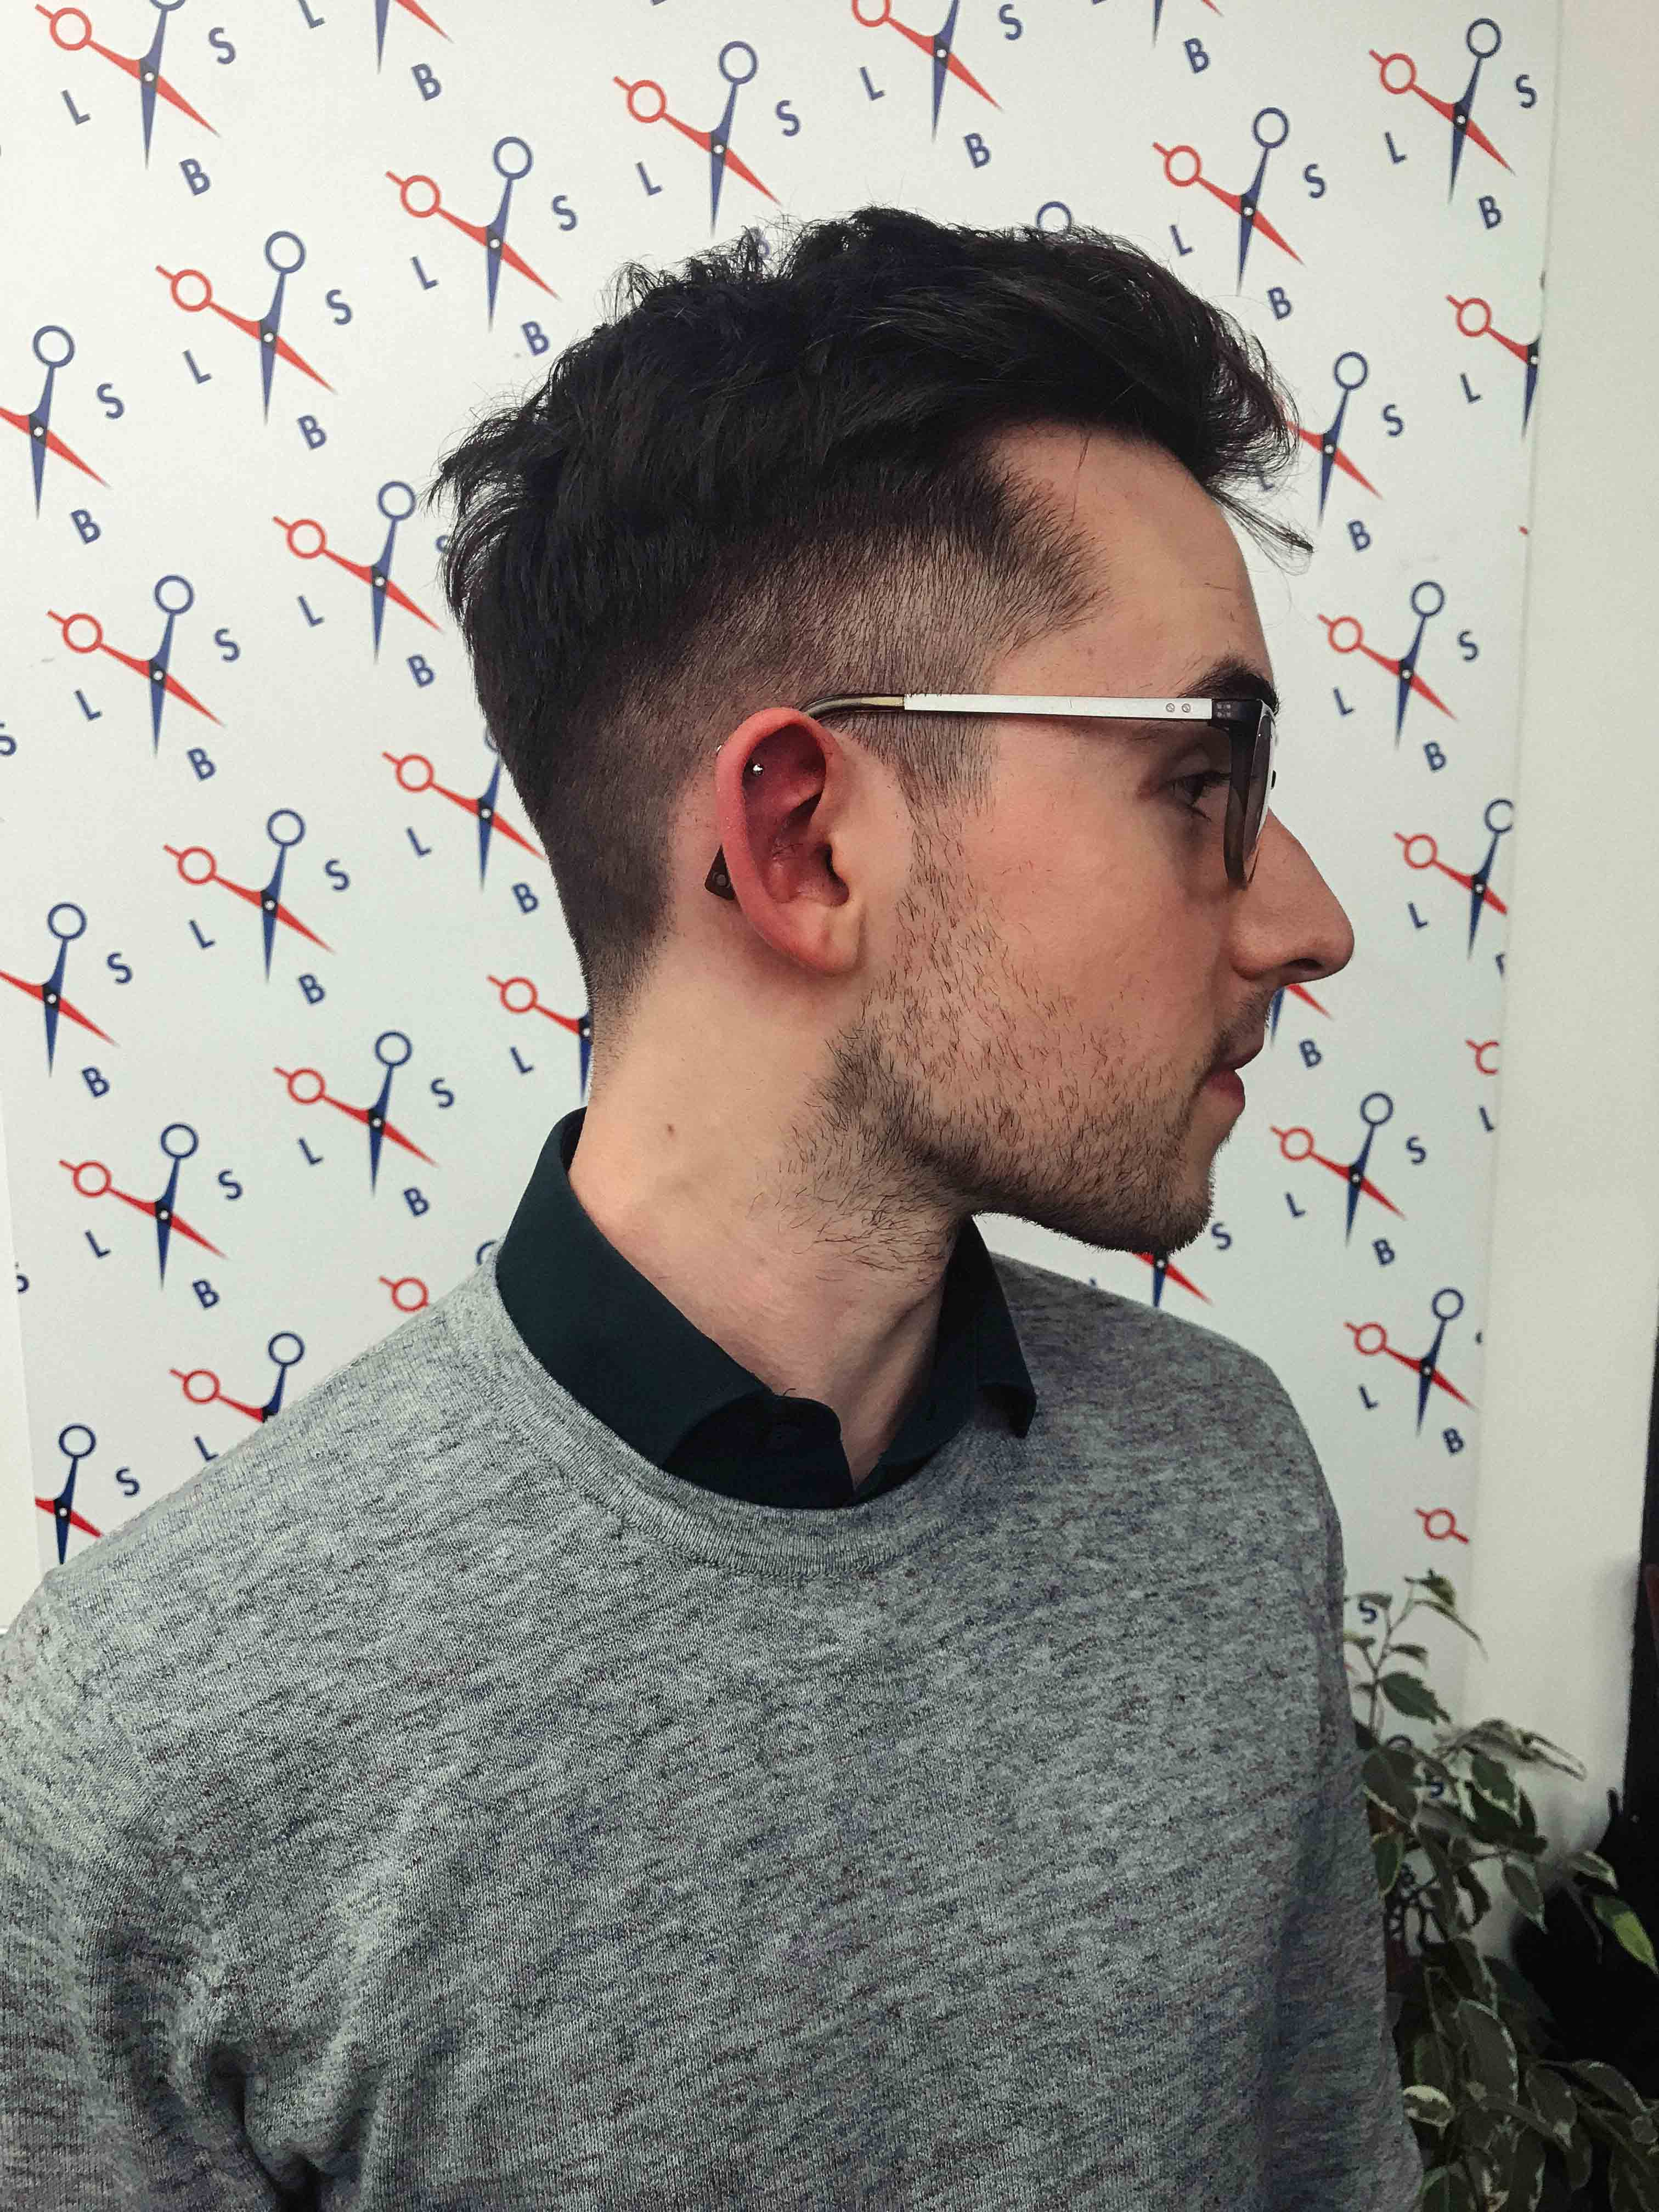 Robin-James-Man-For-Himself-Barber-Haircut-Cuts-4